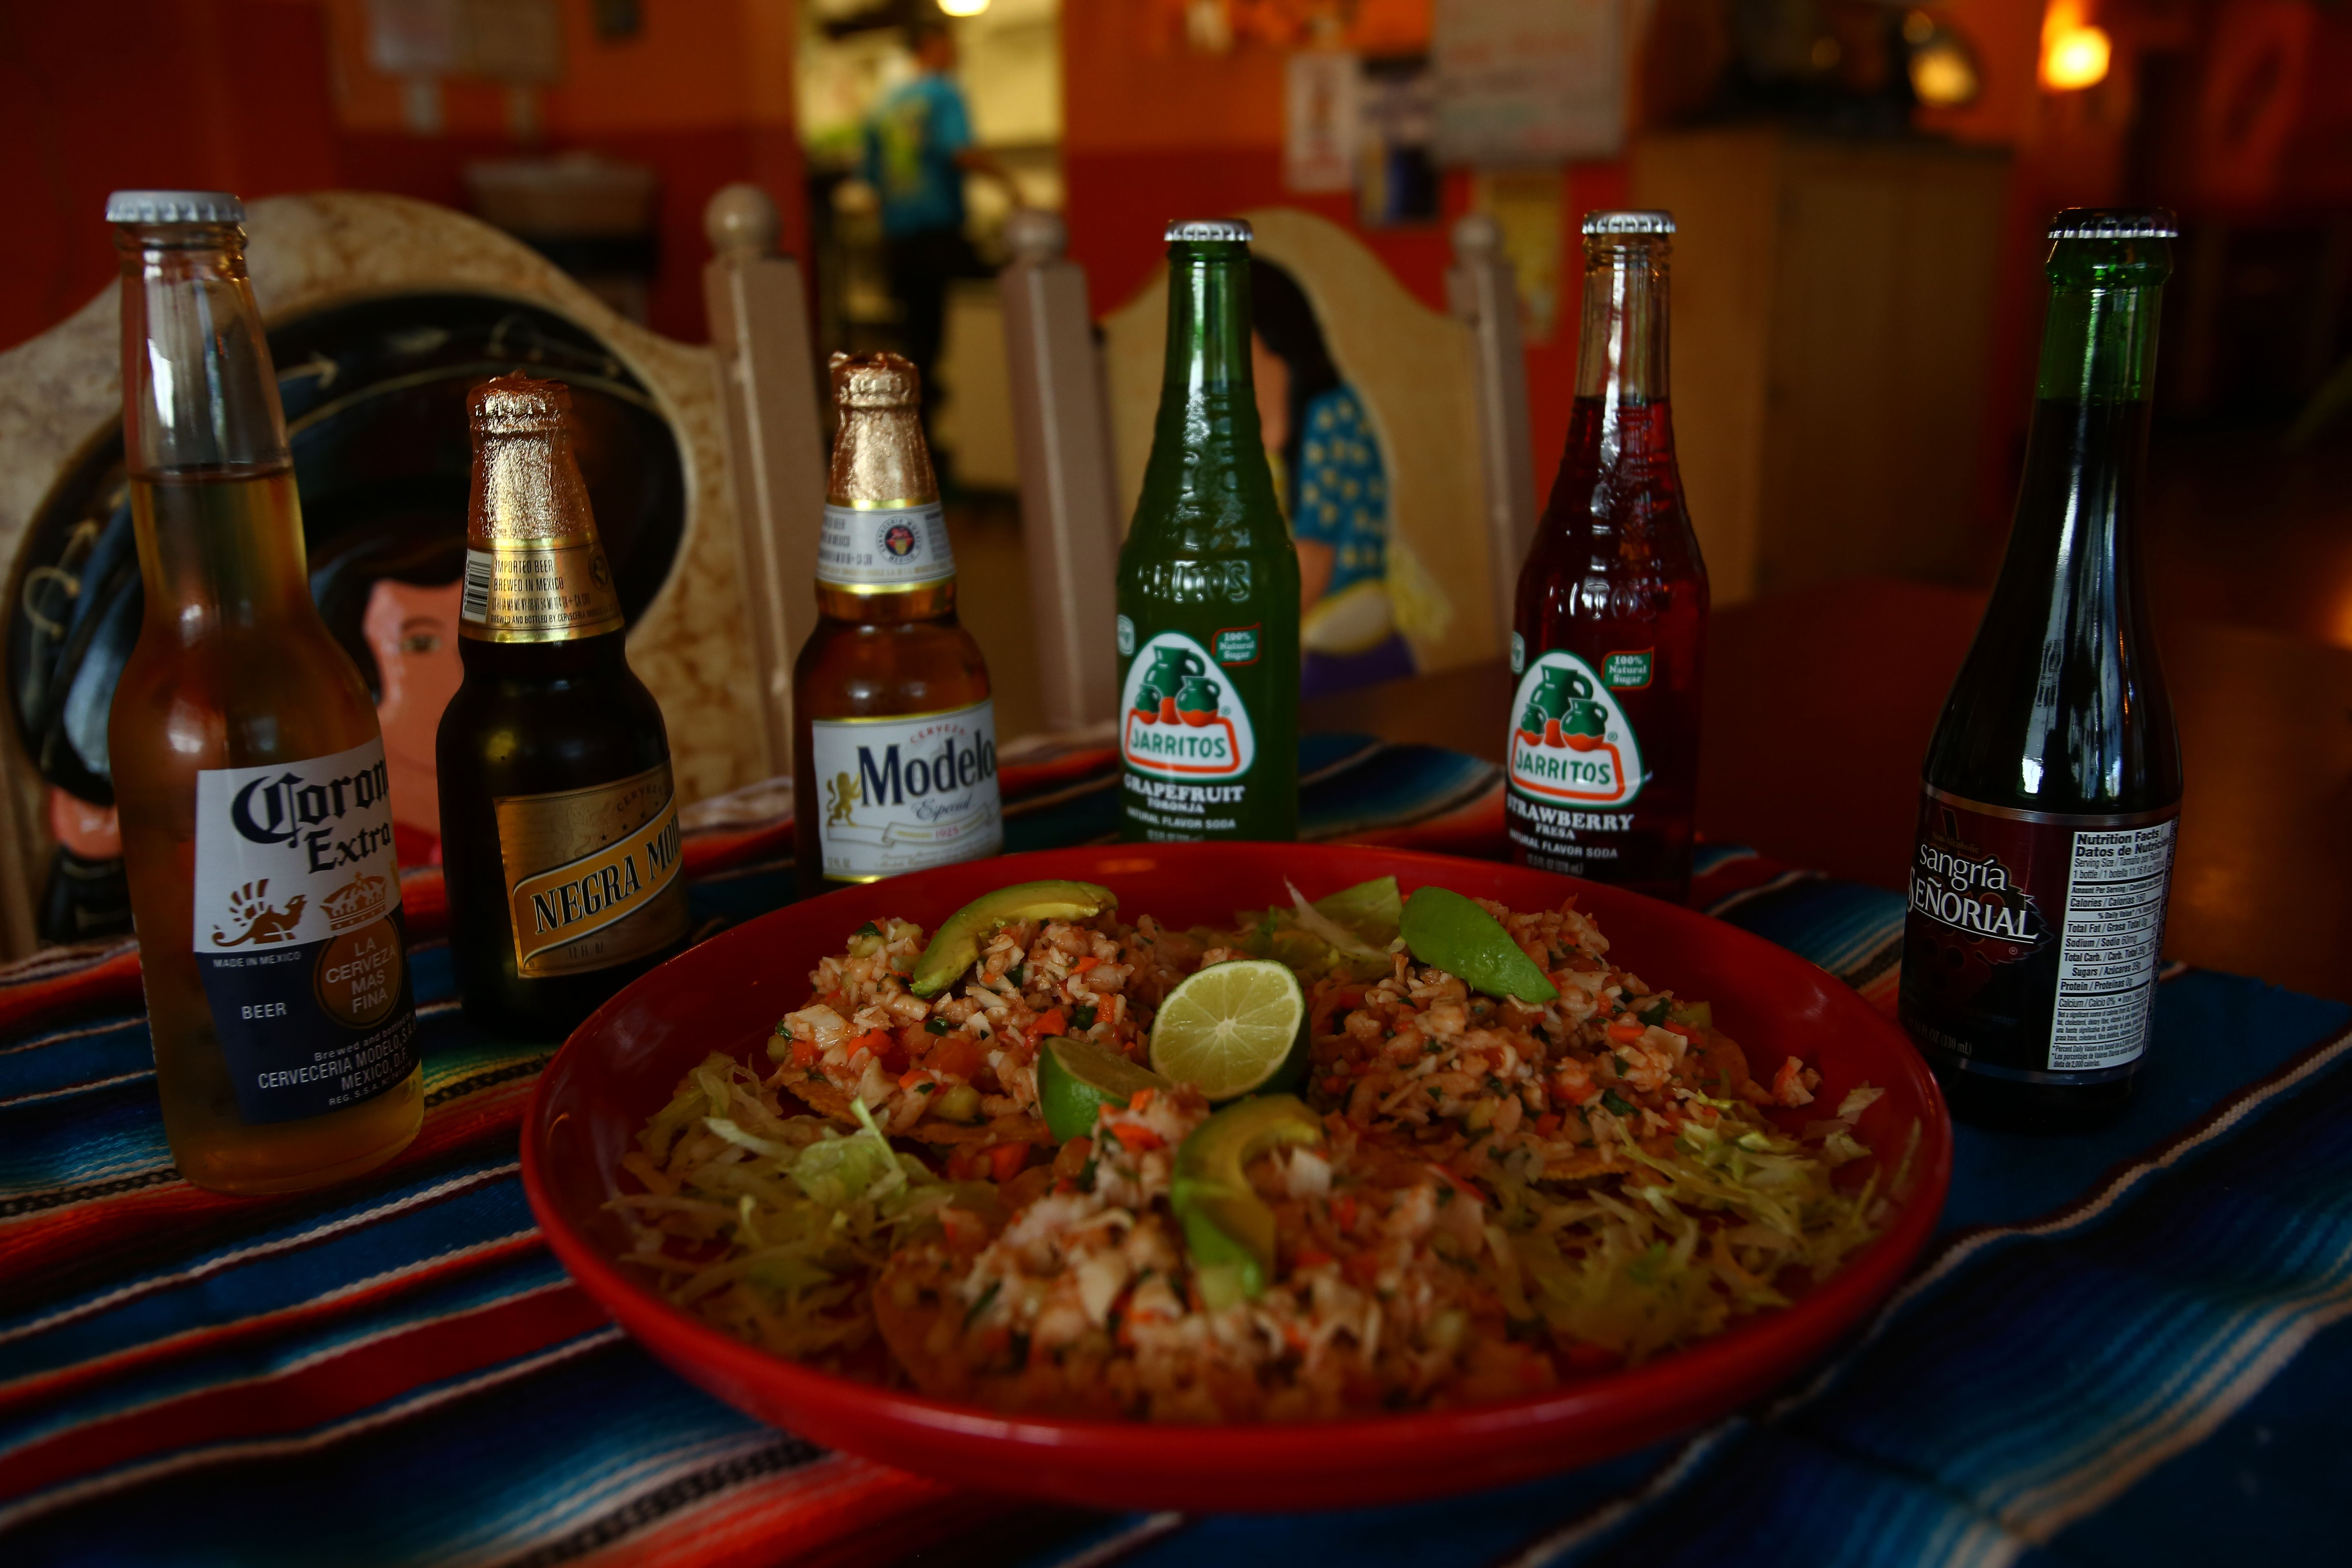 Jaliscos mexican restaurant 325 river pkwy 2107 e 17th